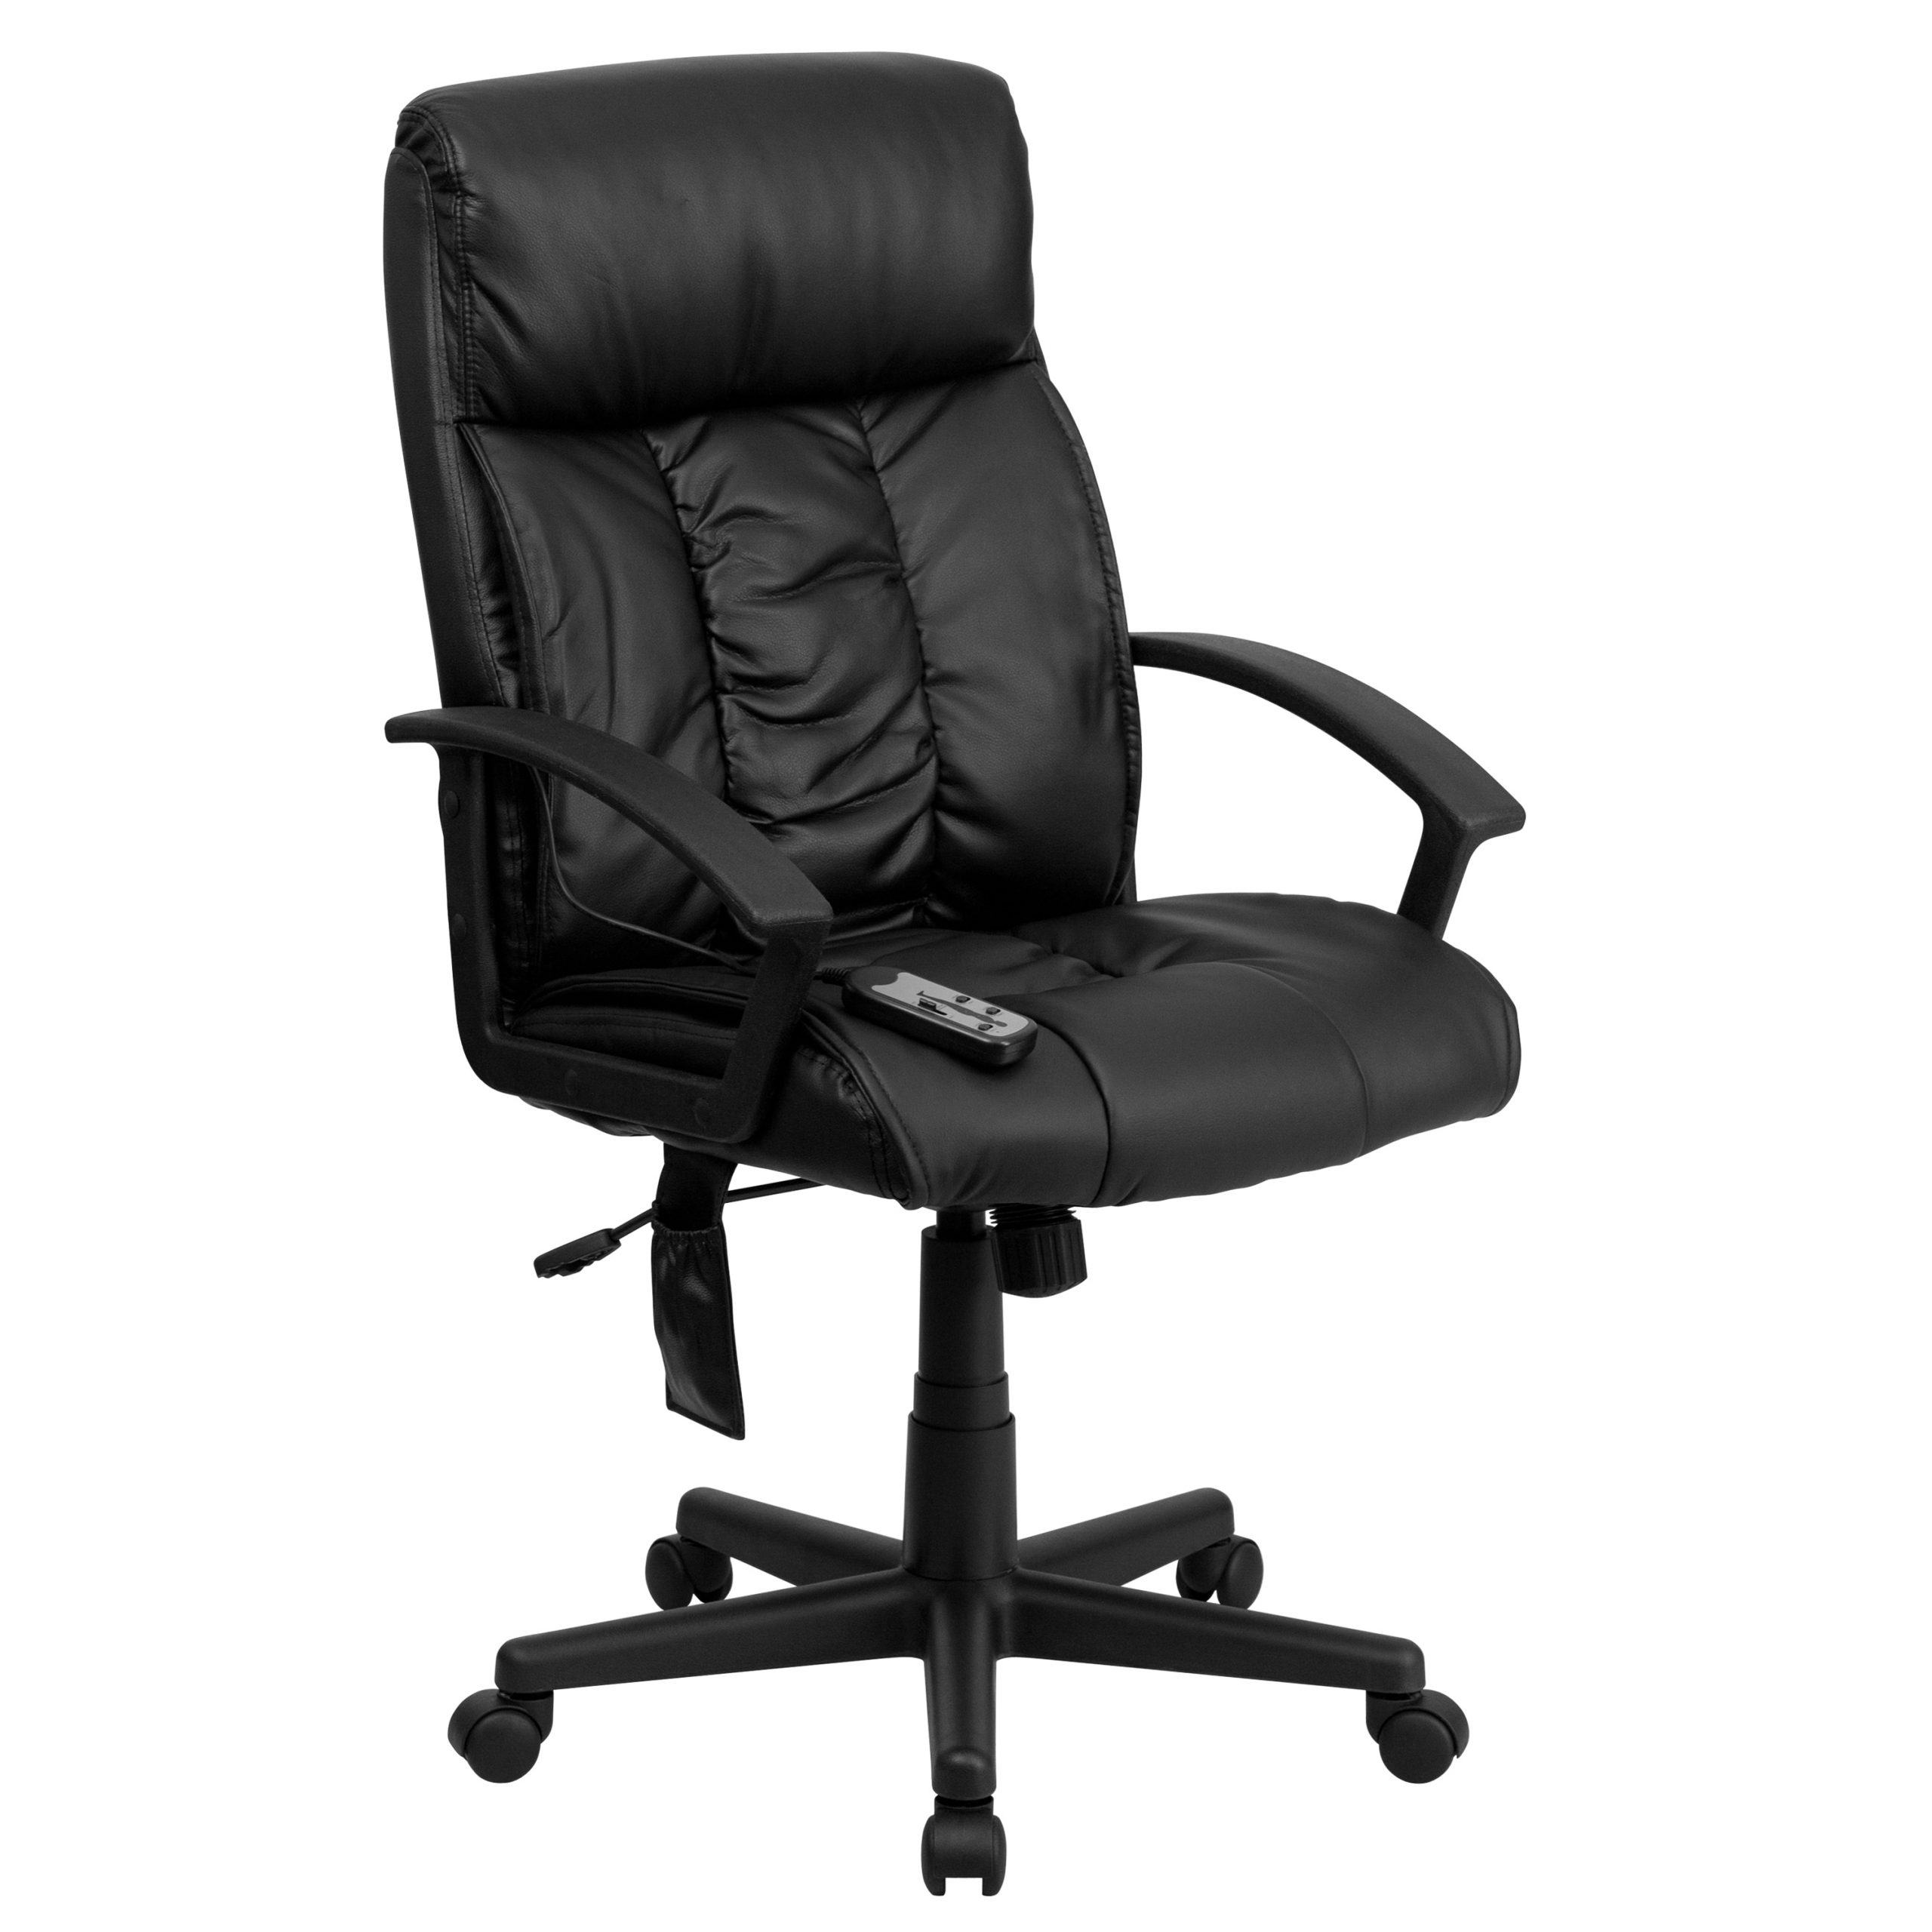 A Line Furniture Comfy Massaging Black Leather Executive Regarding Office Sofas And Chairs (View 7 of 15)